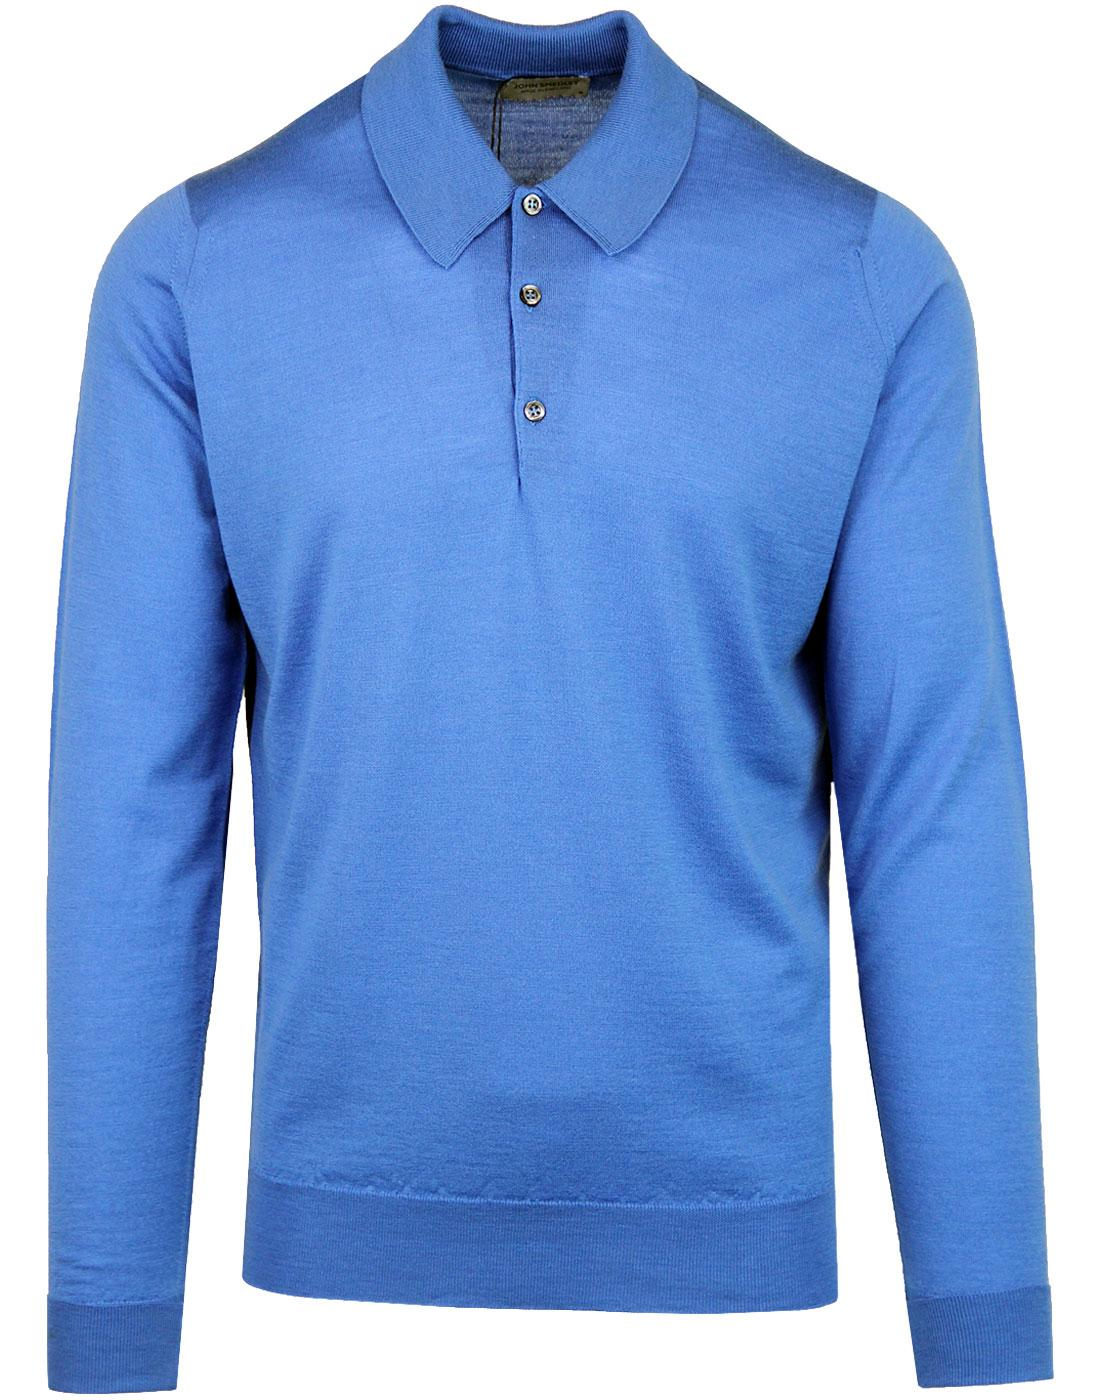 Dorset JOHN SMEDLEY Made in England Polo Shirt